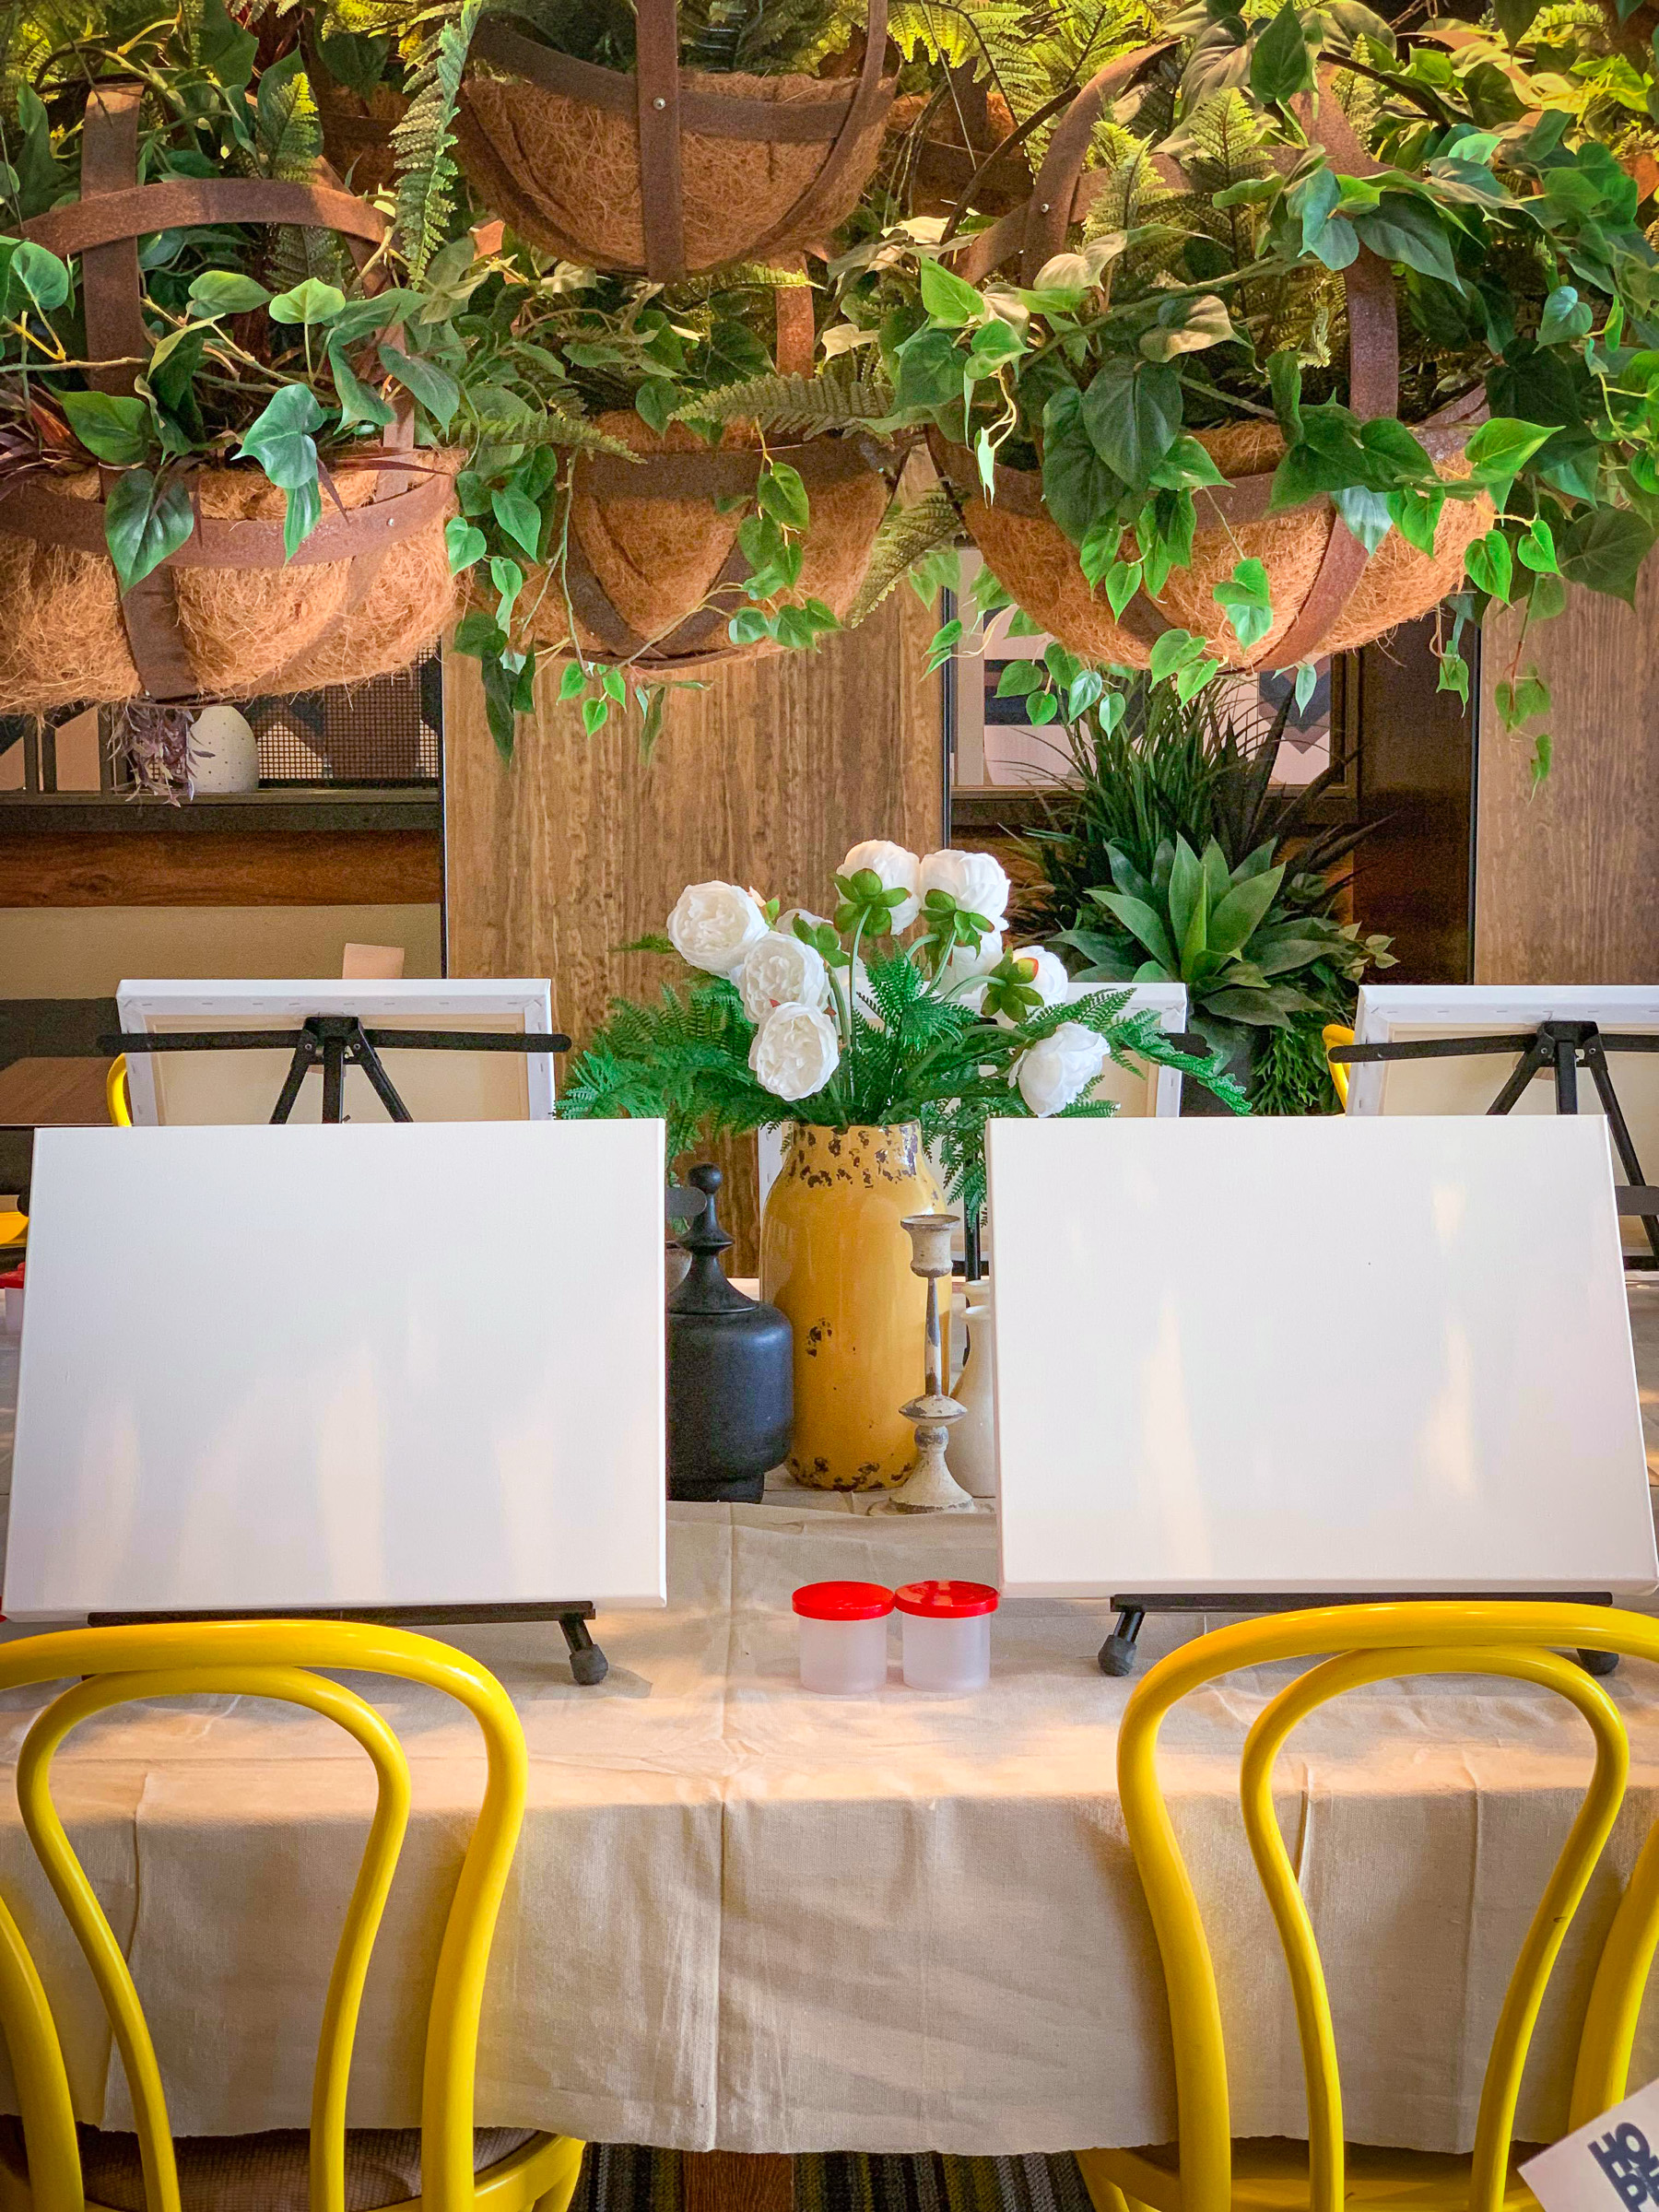 Arts and Craft Beer Paint Class